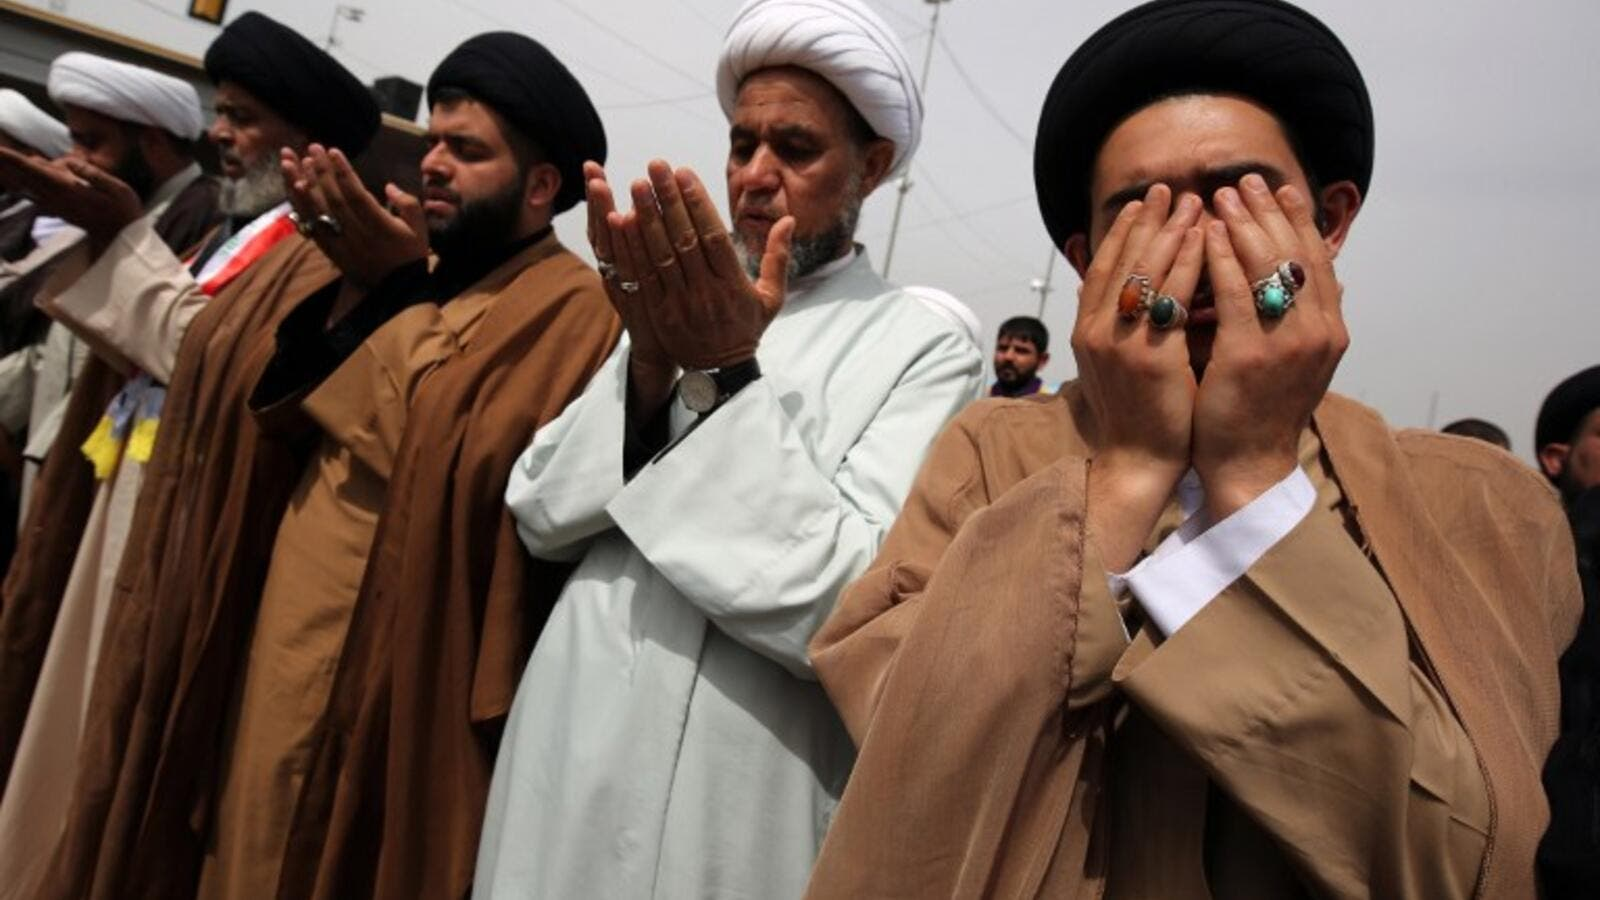 Shia clerics and supporters of Iraqi cleric Moqtada al-Sadr pray during a demo calling for governmental reform and elimination of corruption on March 25, 2016, outside the main gates of Baghdad's Green Zone. (AFP/Ahmad al-Ruvaye)